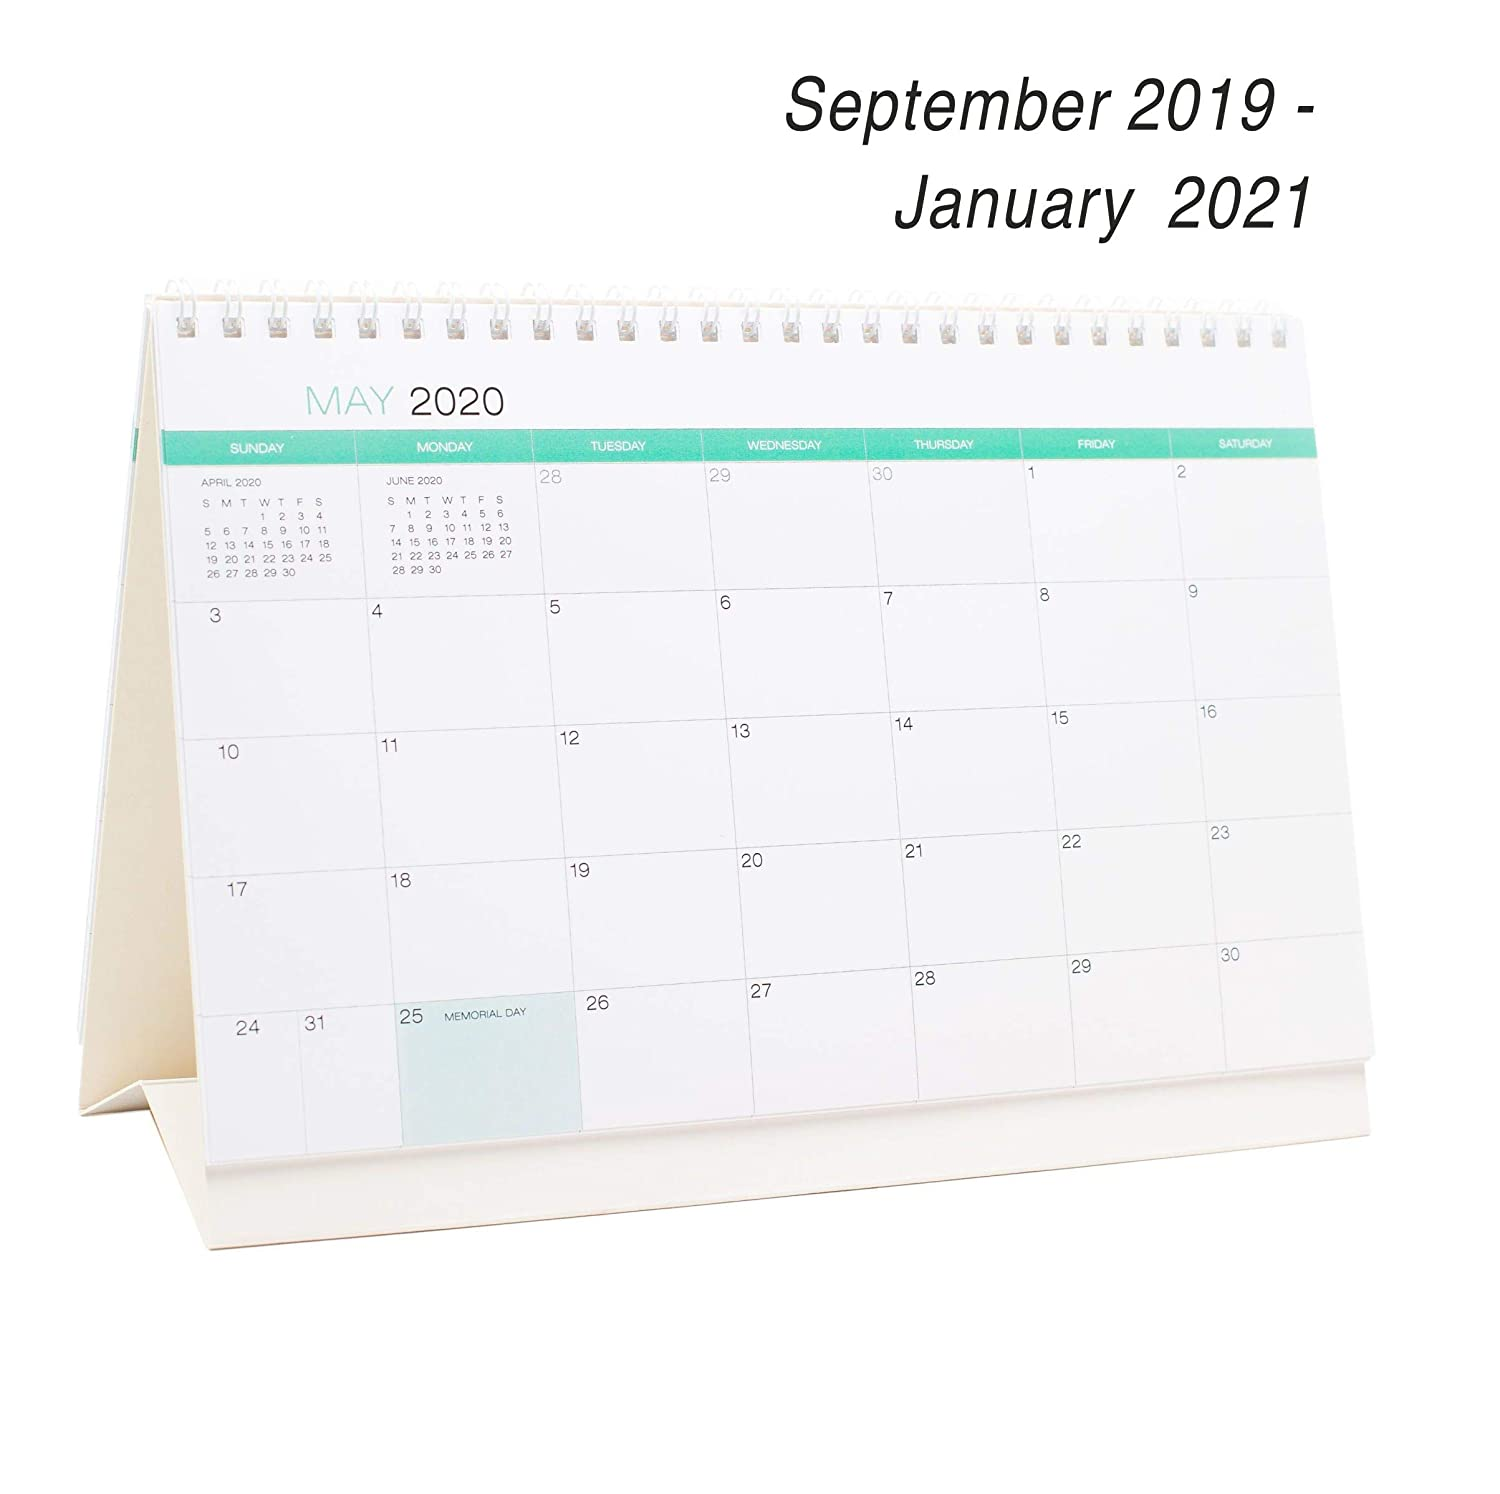 Desk Calendar From September 2019 Through January 2021 - 17 Months Classic Flip Calendar - Monthly Calendar Planner - Daily Planner - Desktop Calendar 2019-2021 - Tent Office Calendar